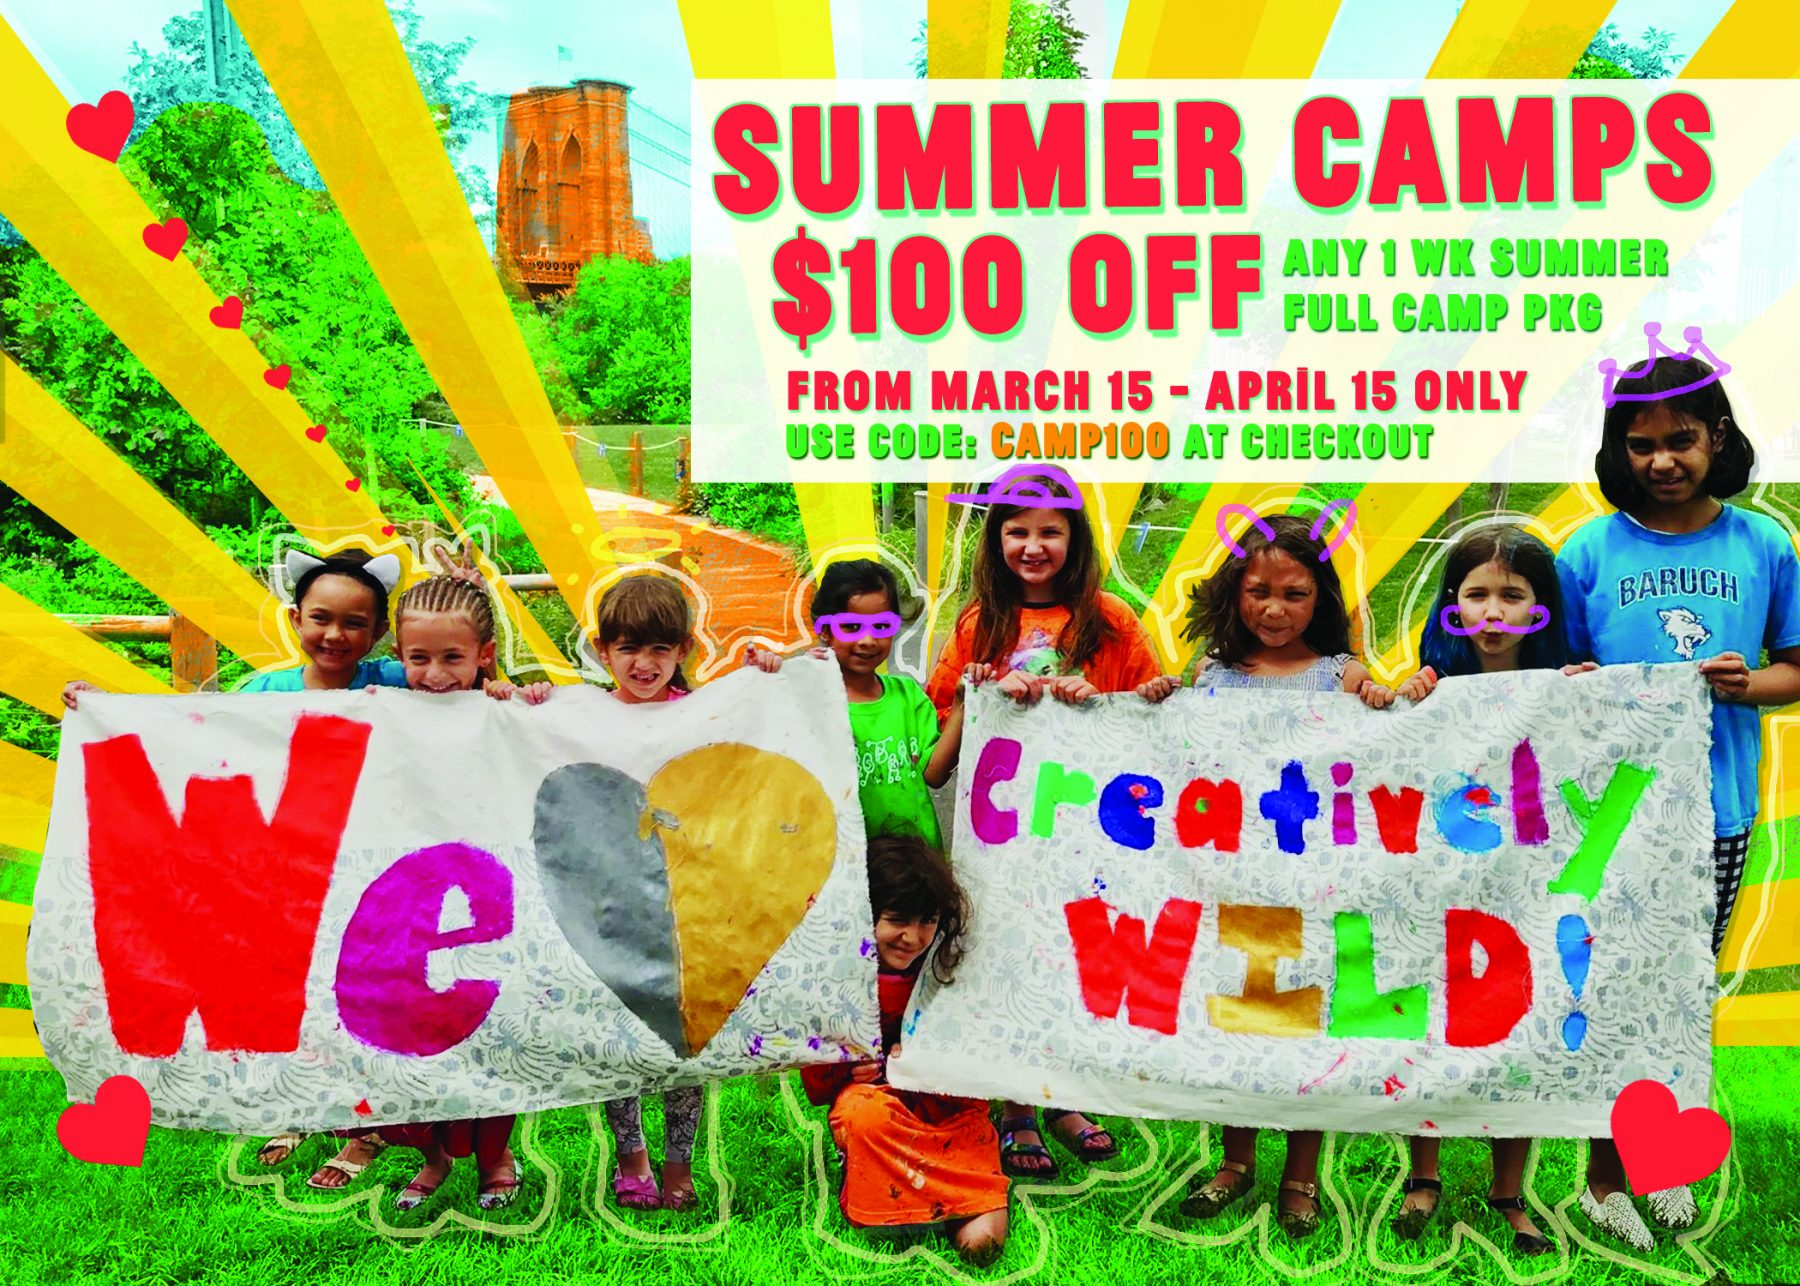 Dumbo's Creatively WILD Summer Camps EarlyBird $100 OFF Camp Full PKG - MAR 15-APRIL 15